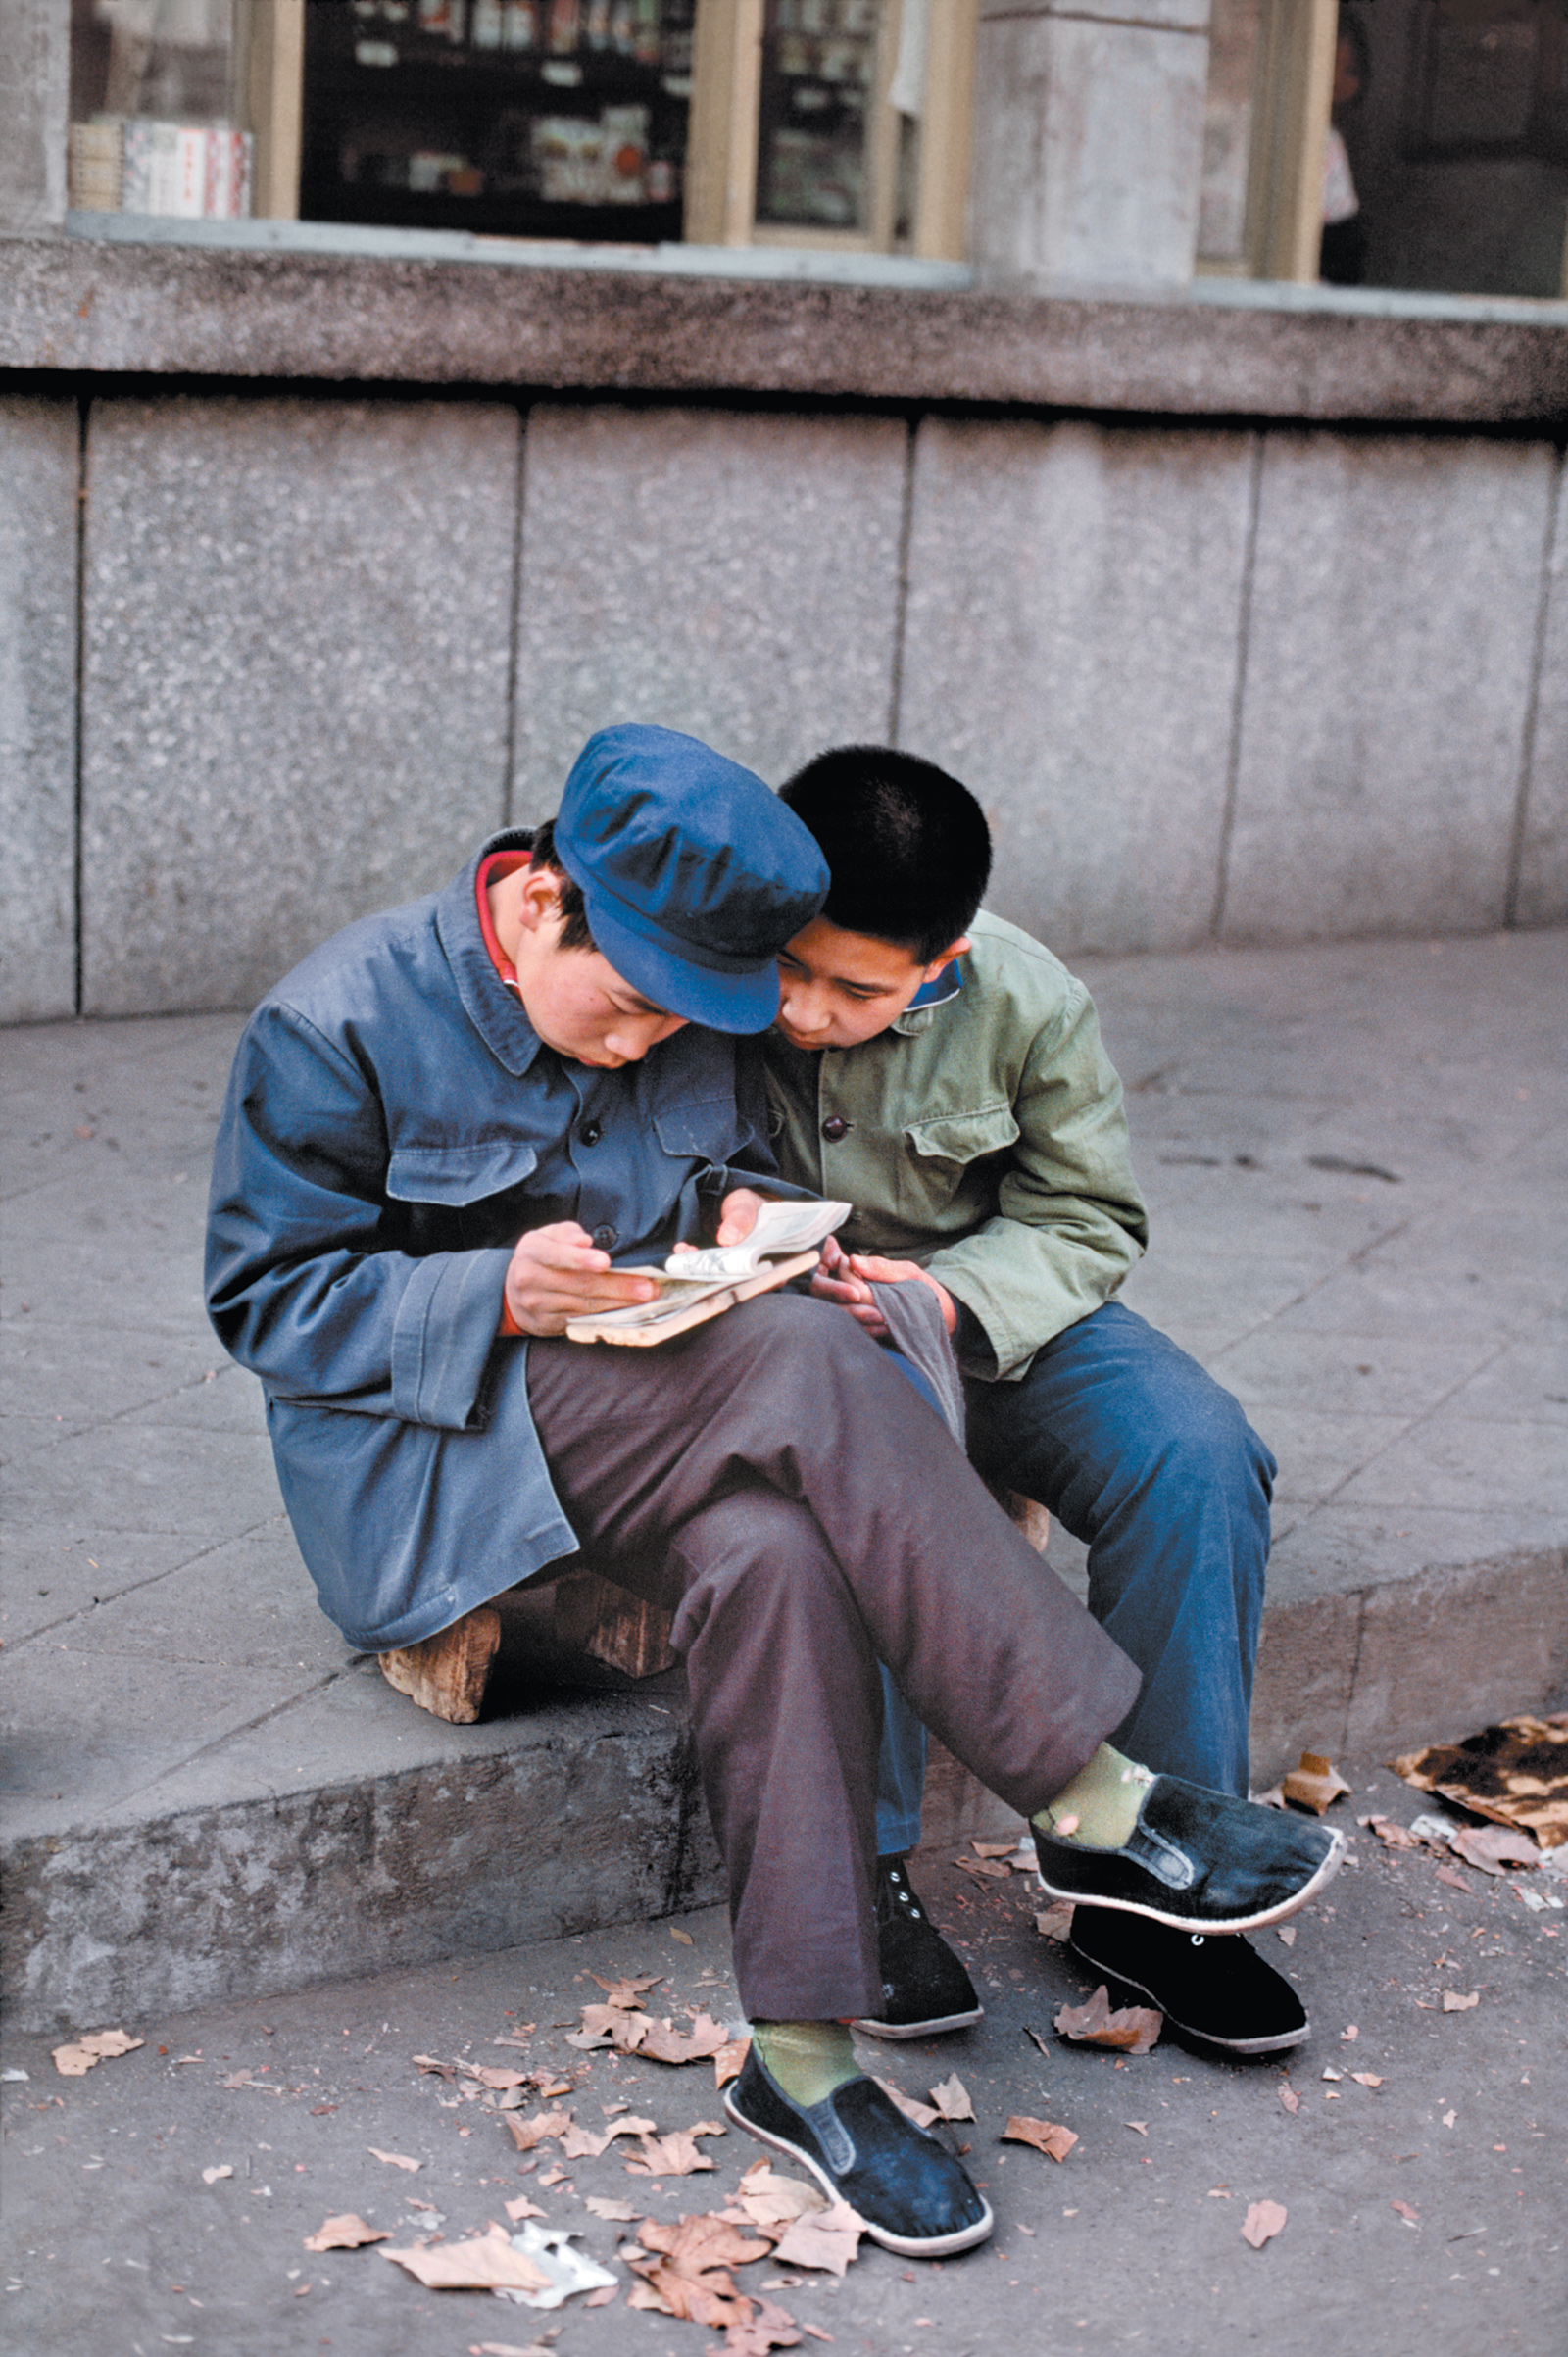 Beijing, 1984; photograph by Steve McCurry from his book On Reading, which includes a foreword by Paul Theroux and has just been published by Phaidon